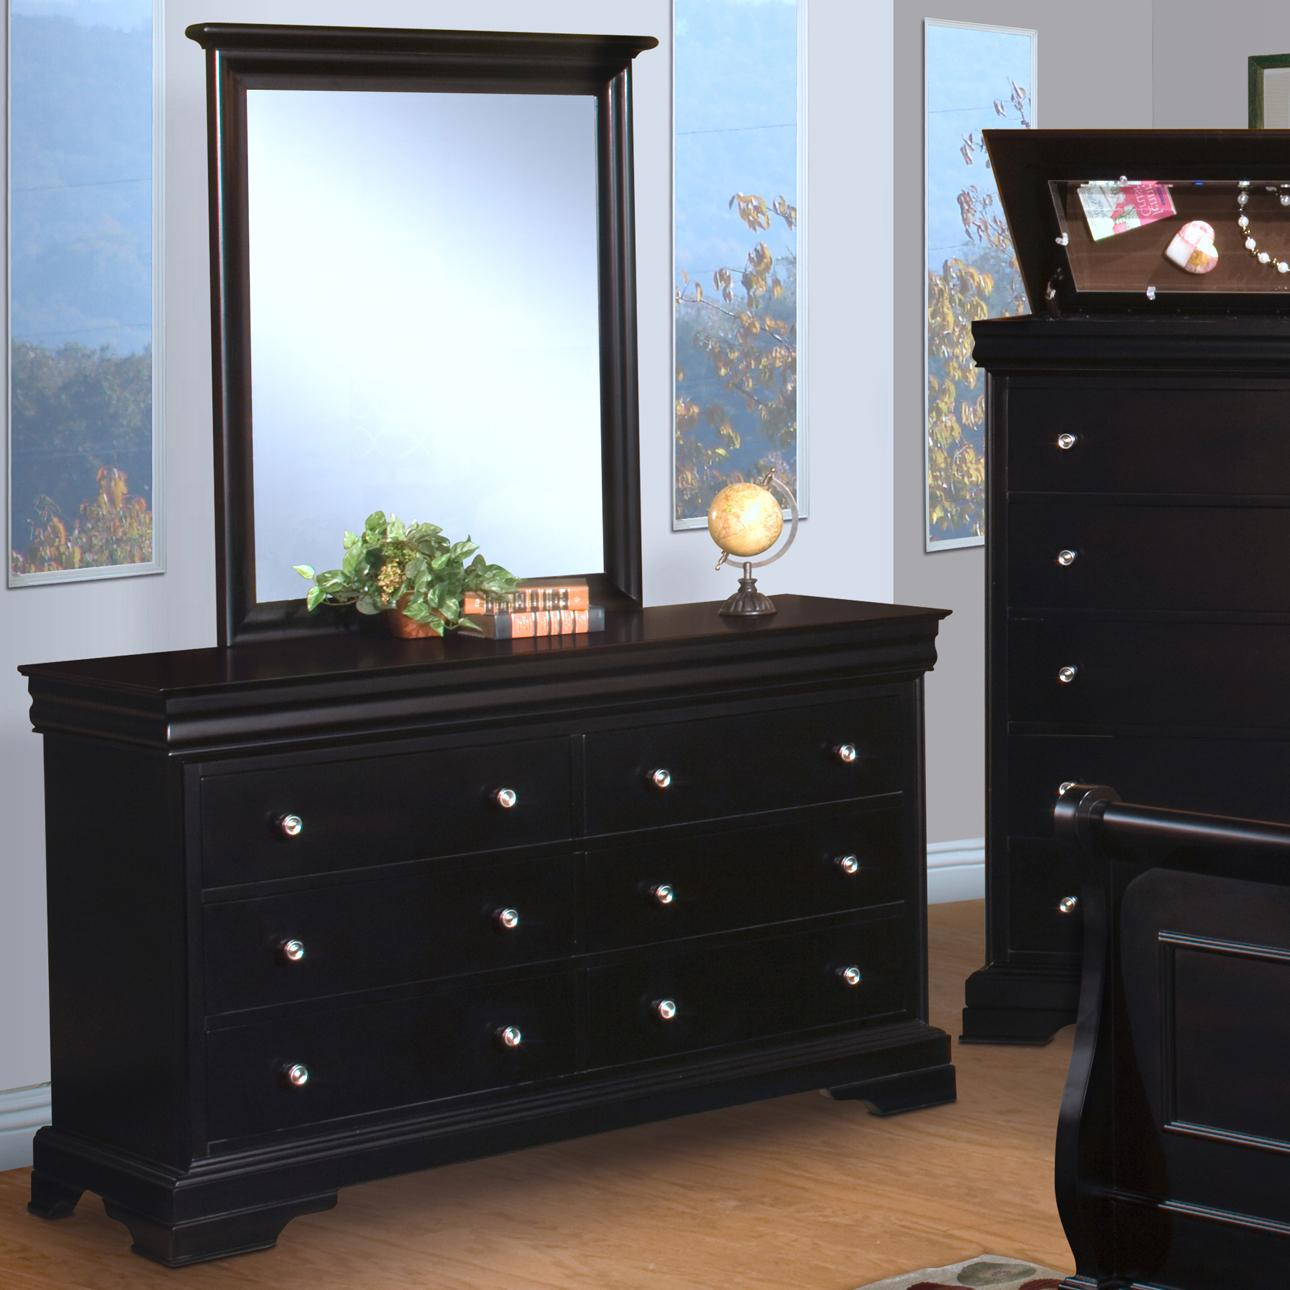 New Classic Belle Rose Youth Dresser and Mirror - Item Number: 00-013-052+063